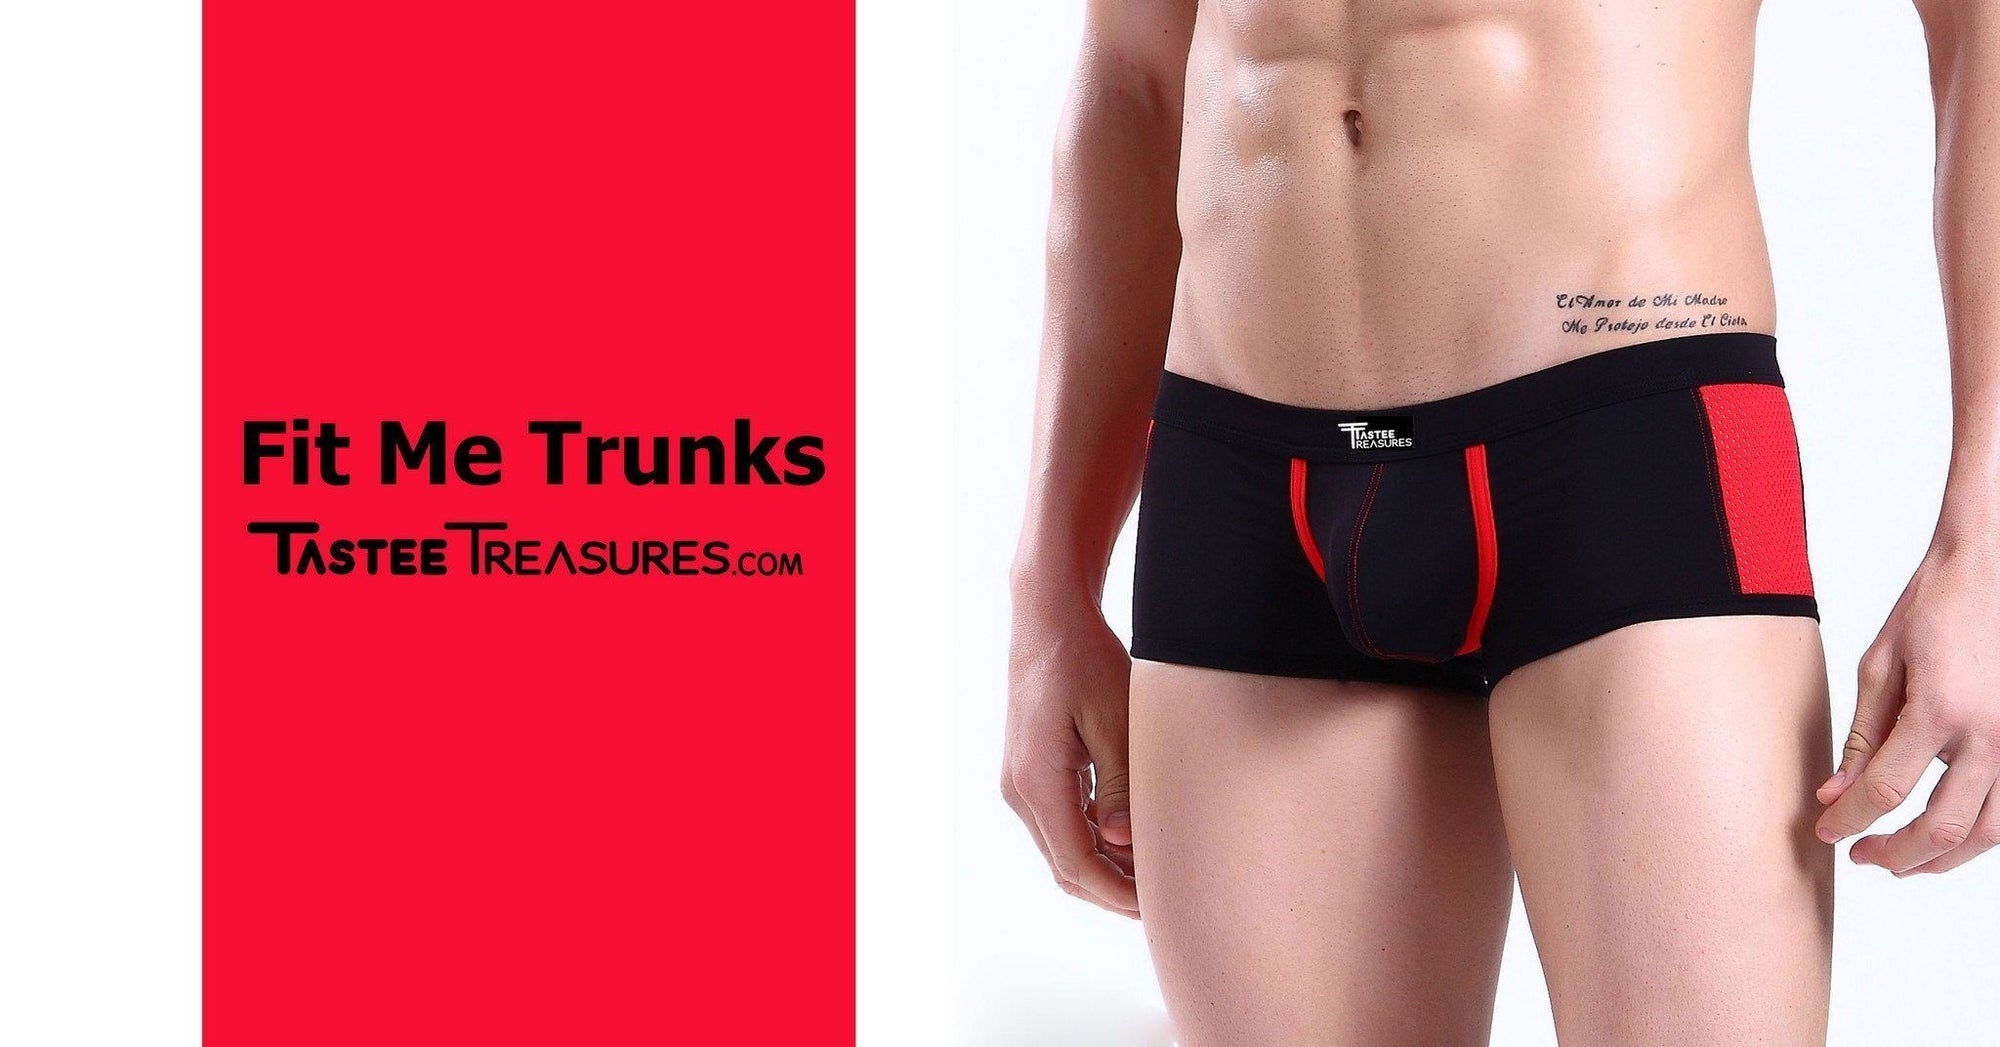 Fit Me Trunks